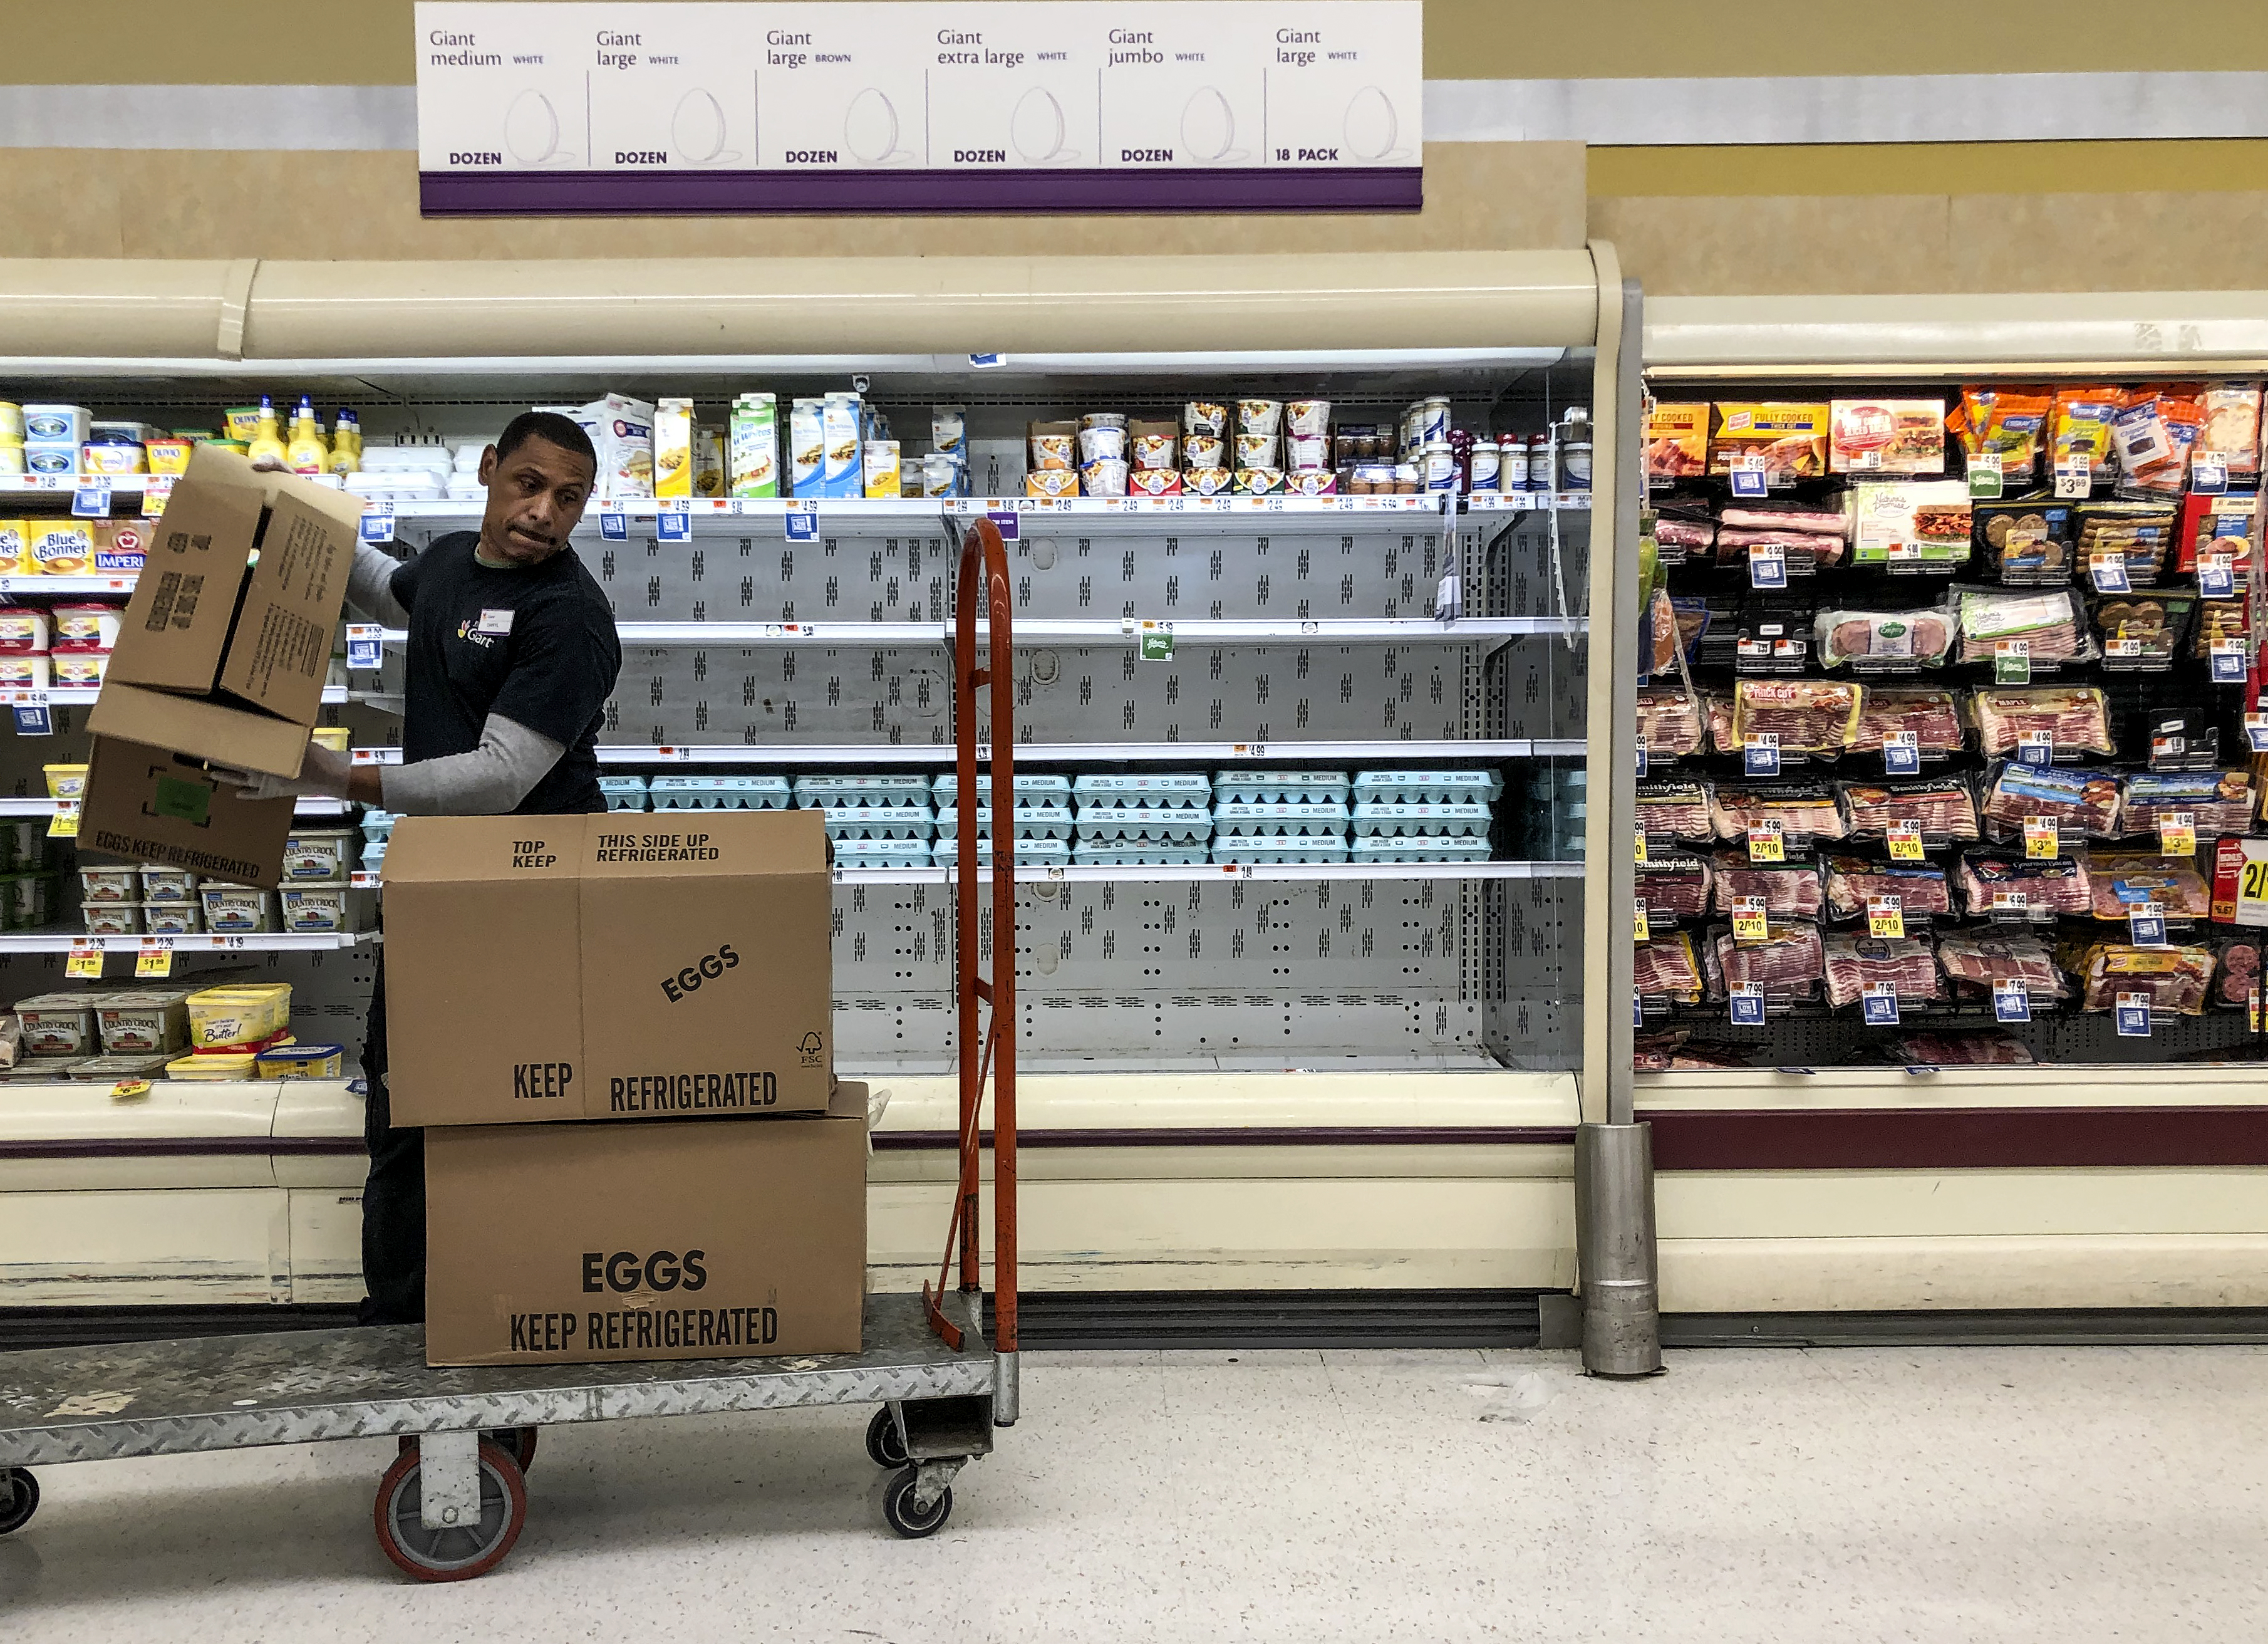 As More Grocery Workers Die Many Supermarket Employees Fear Showing Up During Pandemic The Washington Post